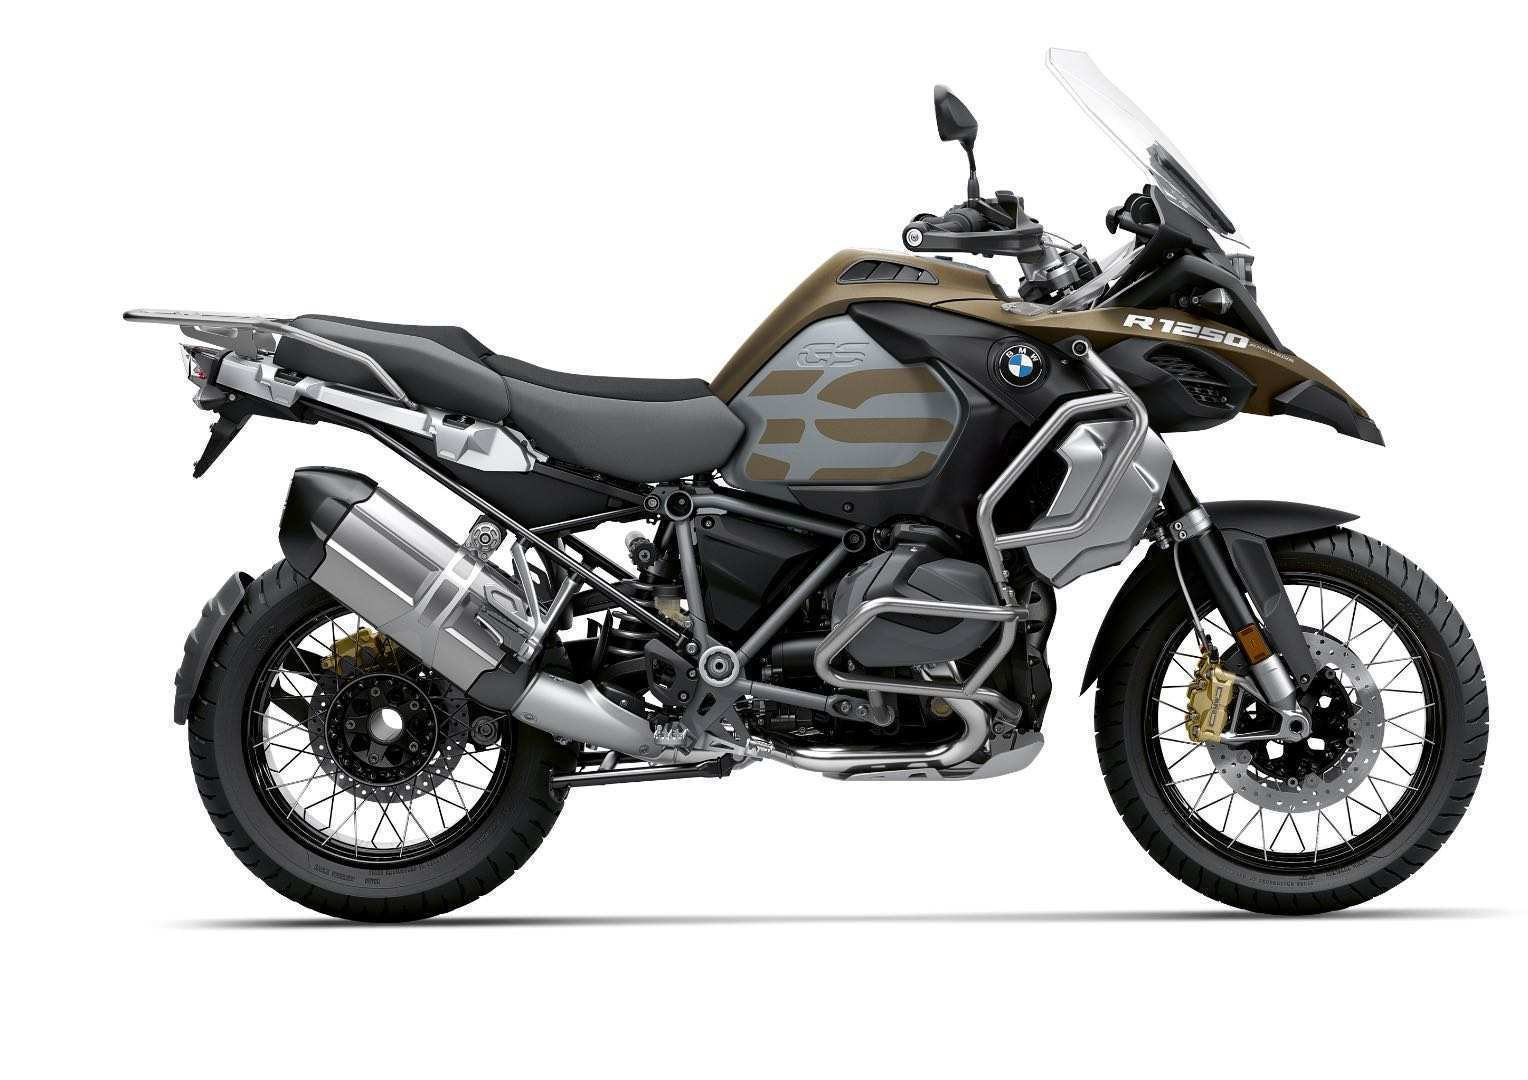 98 Great 2019 Bmw 1250 Gs Pricing for 2019 Bmw 1250 Gs